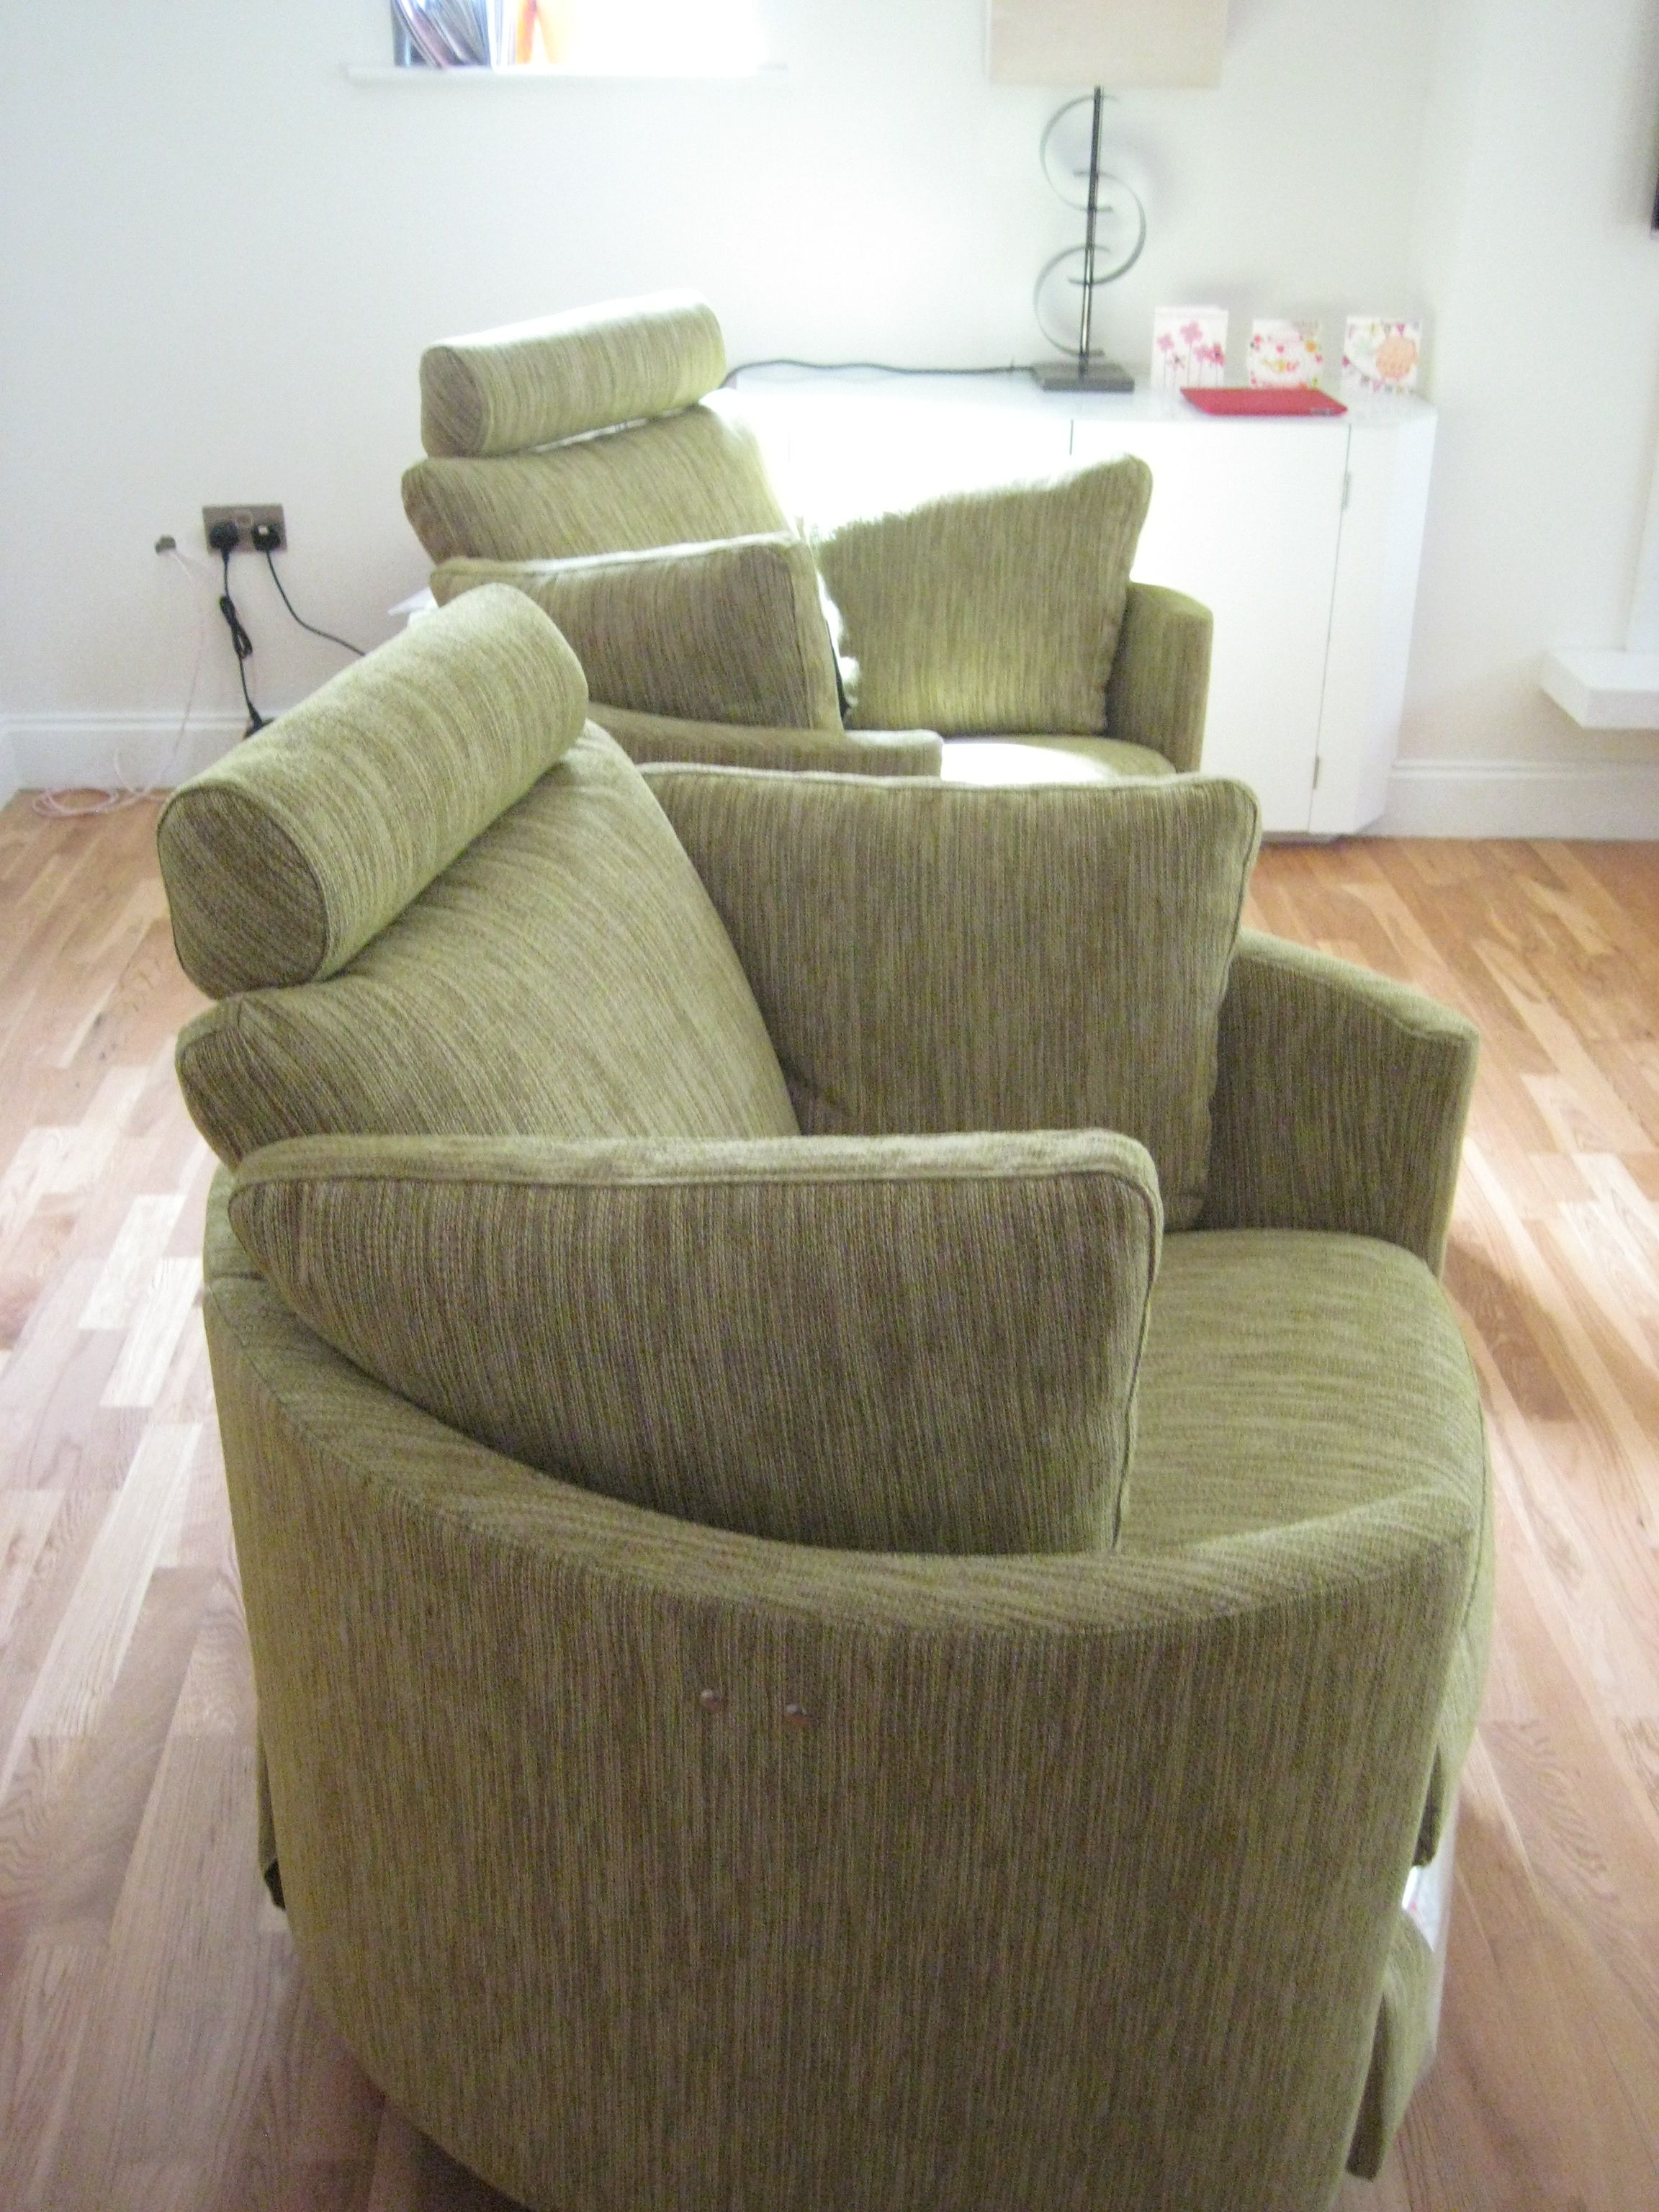 Recliner chair green - Twice As Much Fun These Two Contemporary Electric Recliner Chairs Are In J Brown Harley